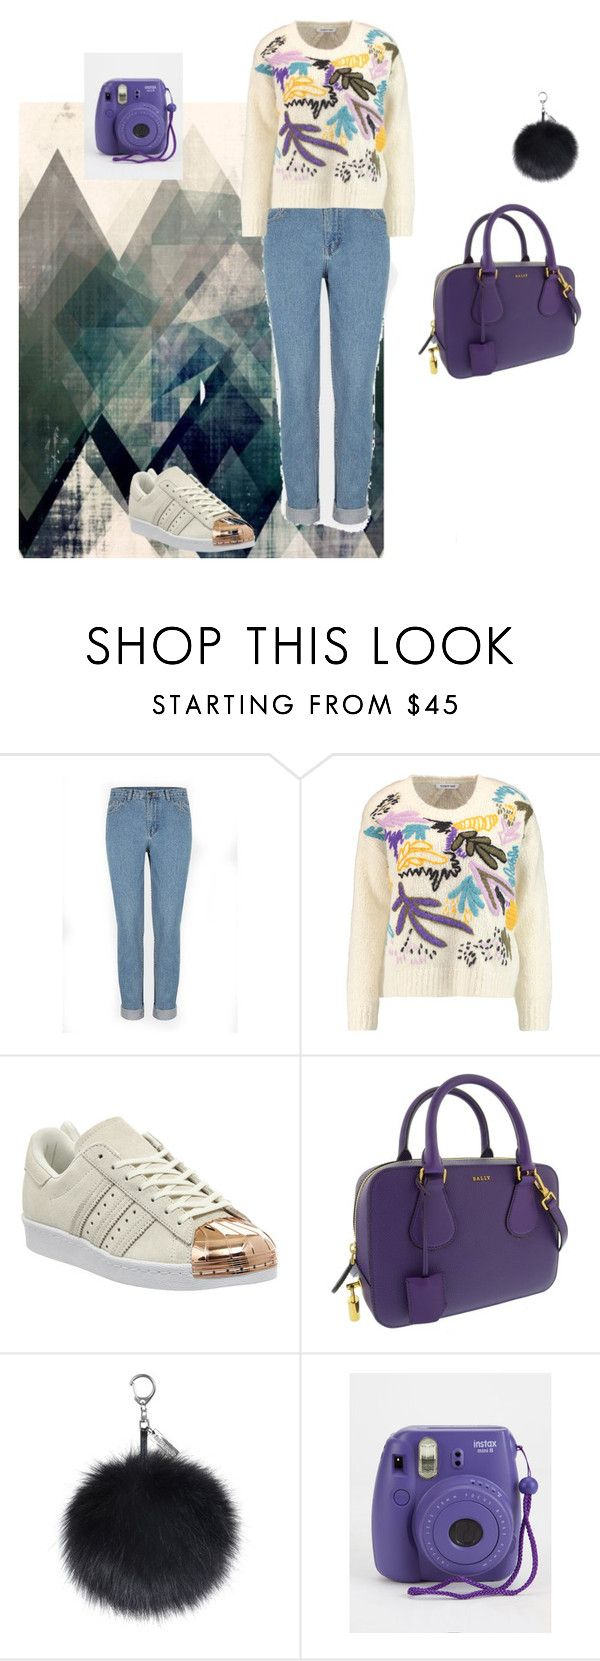 """Untitled #73"" by kayleigh-kester ❤ liked on Polyvore featuring Elizabeth and James, adidas and Bally"